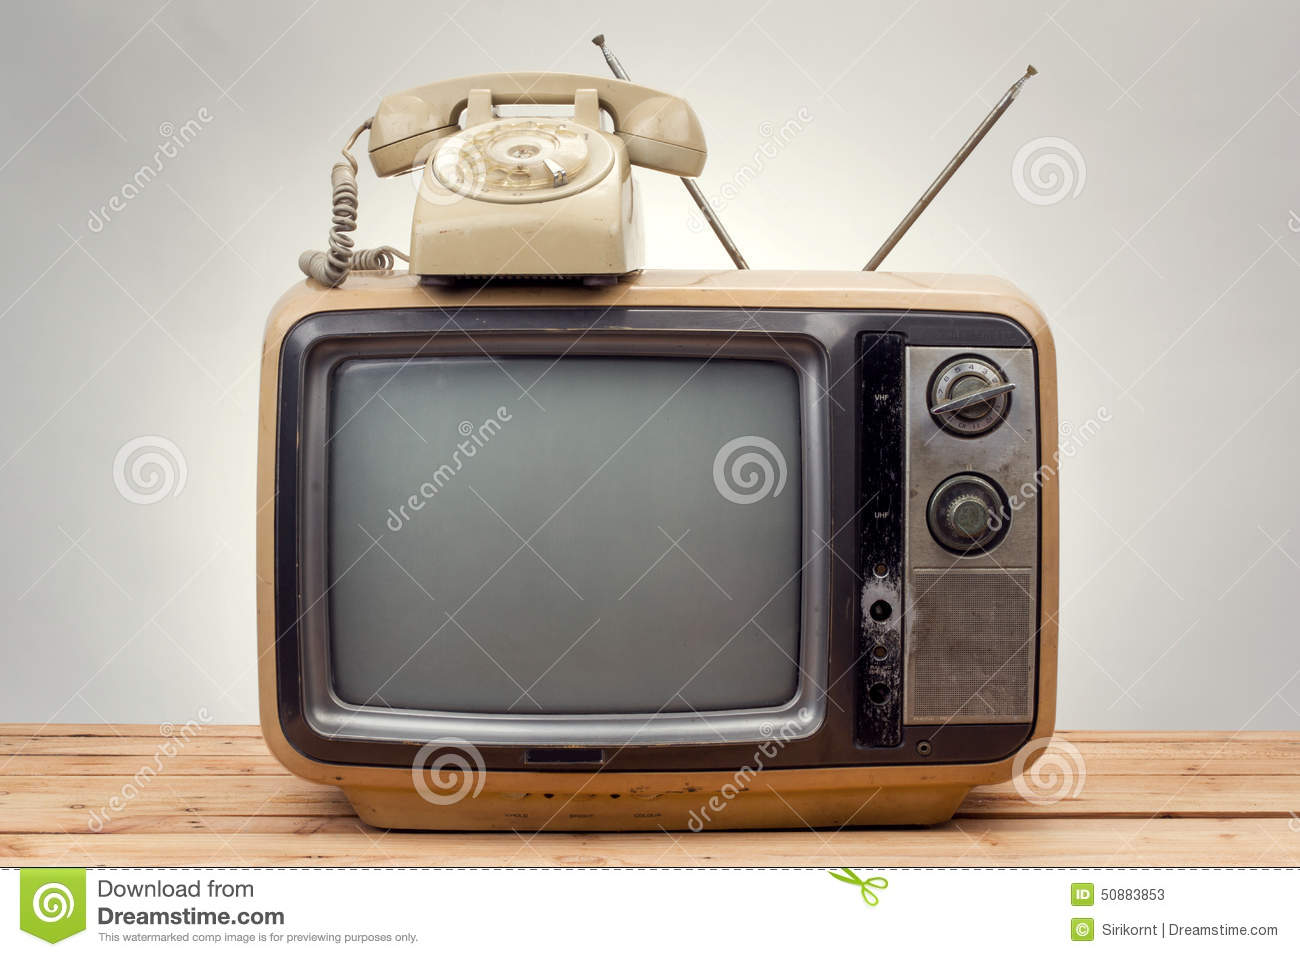 television Vintage style